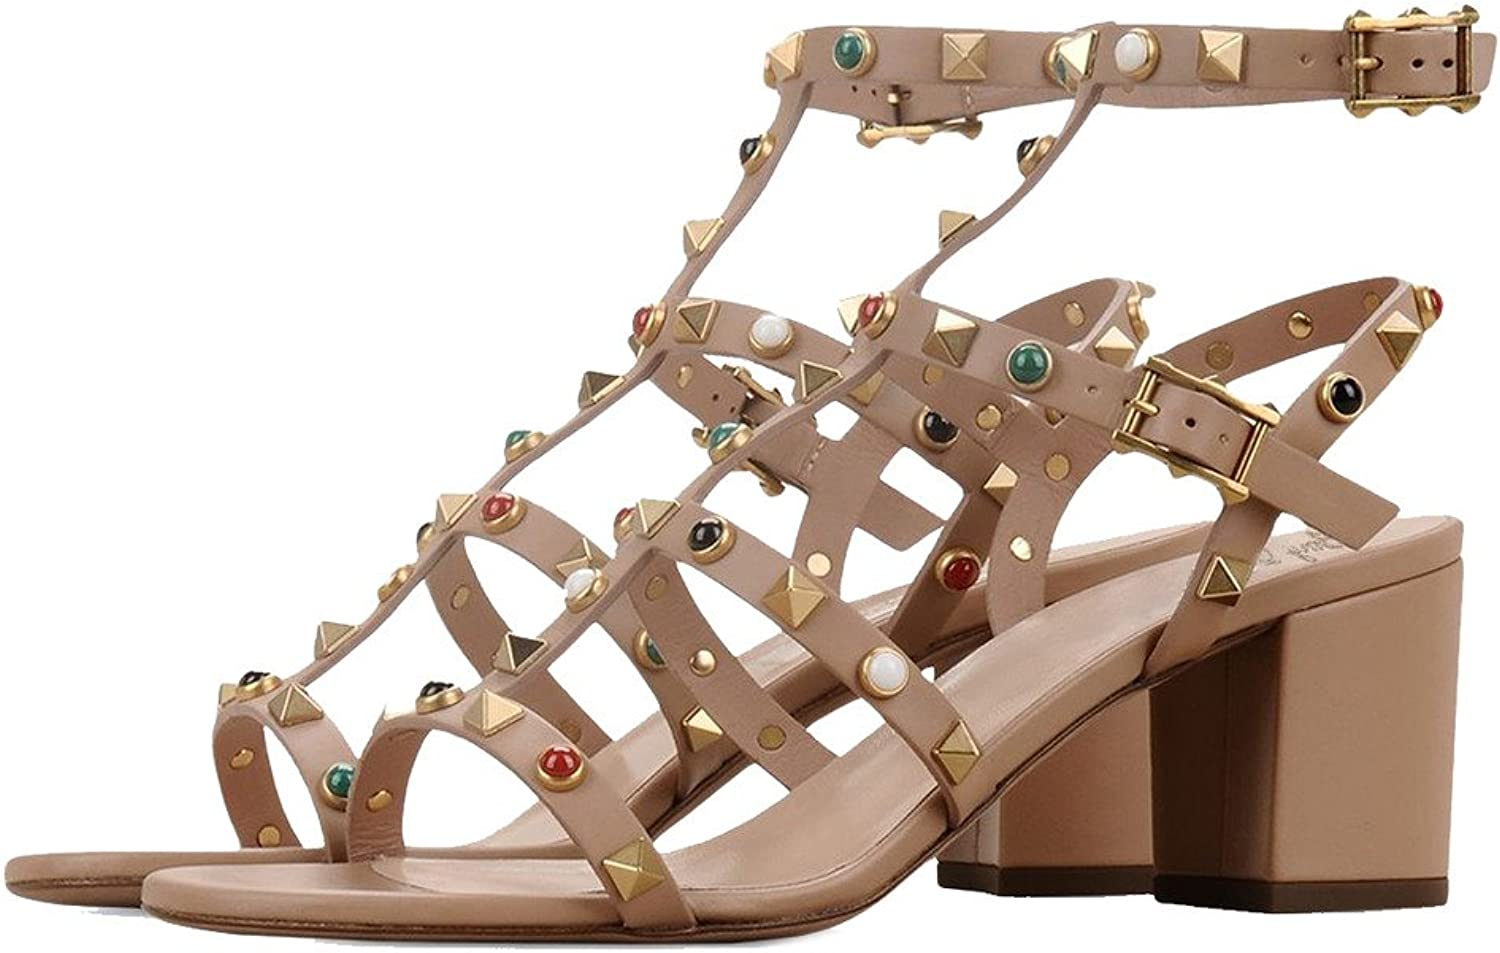 Amy Q Summer Open Toe Ankle Strap Buckle High Heels Gladiator Sandals For Casual Women shoes